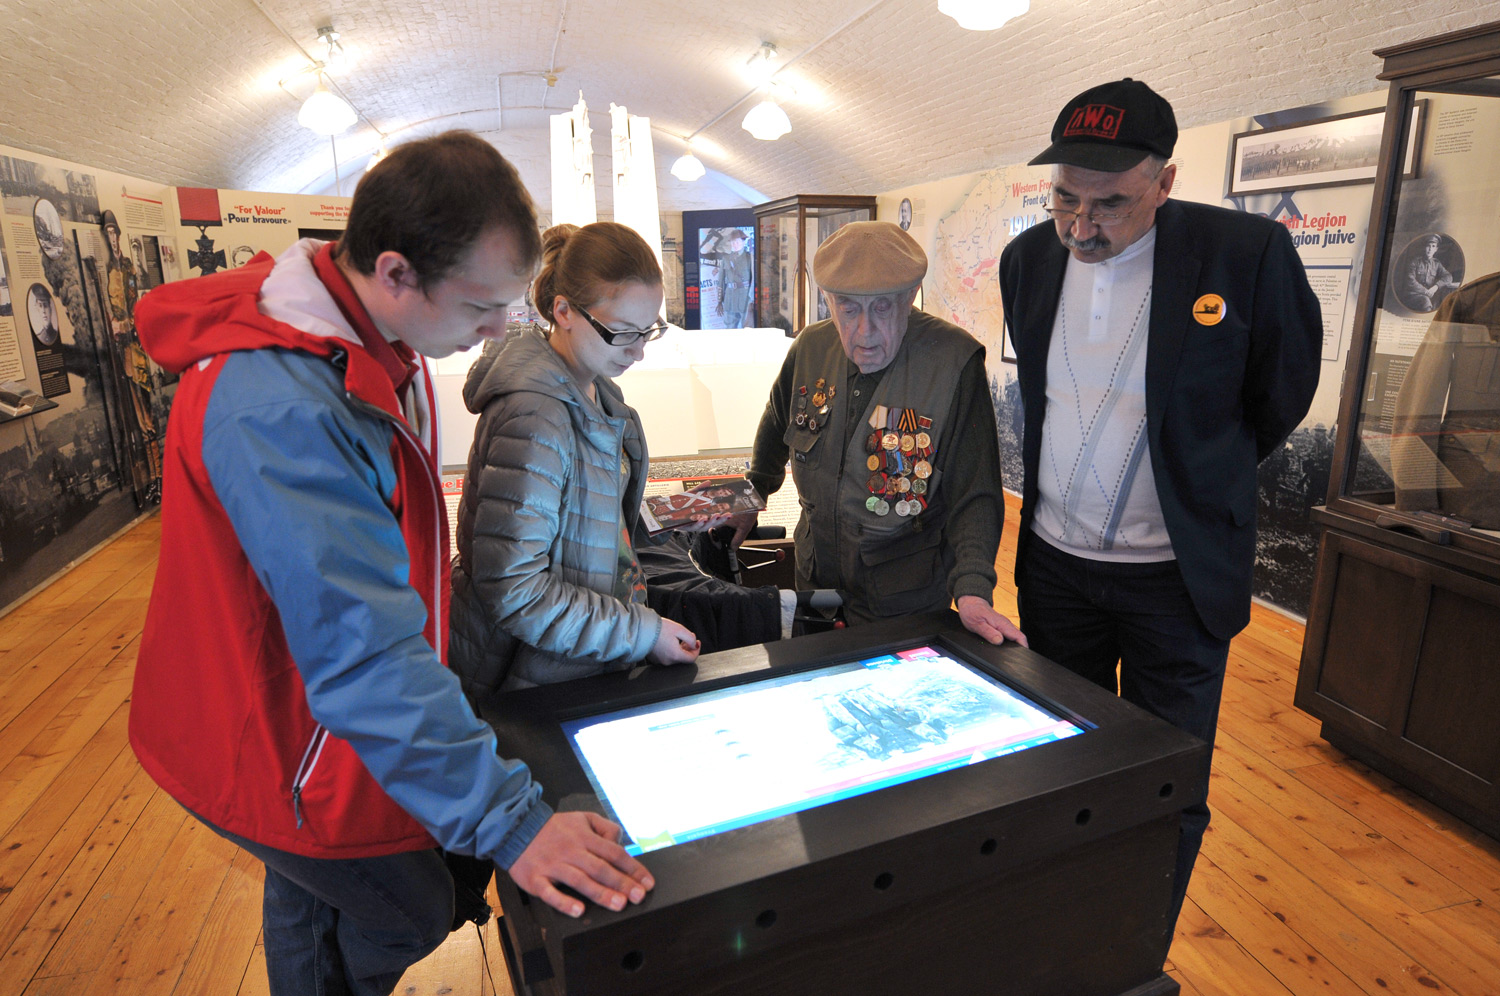 INTERACTIVE Located within a historic military building and surrounded by unique artifacts, the kiosk provides context for an exhibition that defined Canada as a nation.